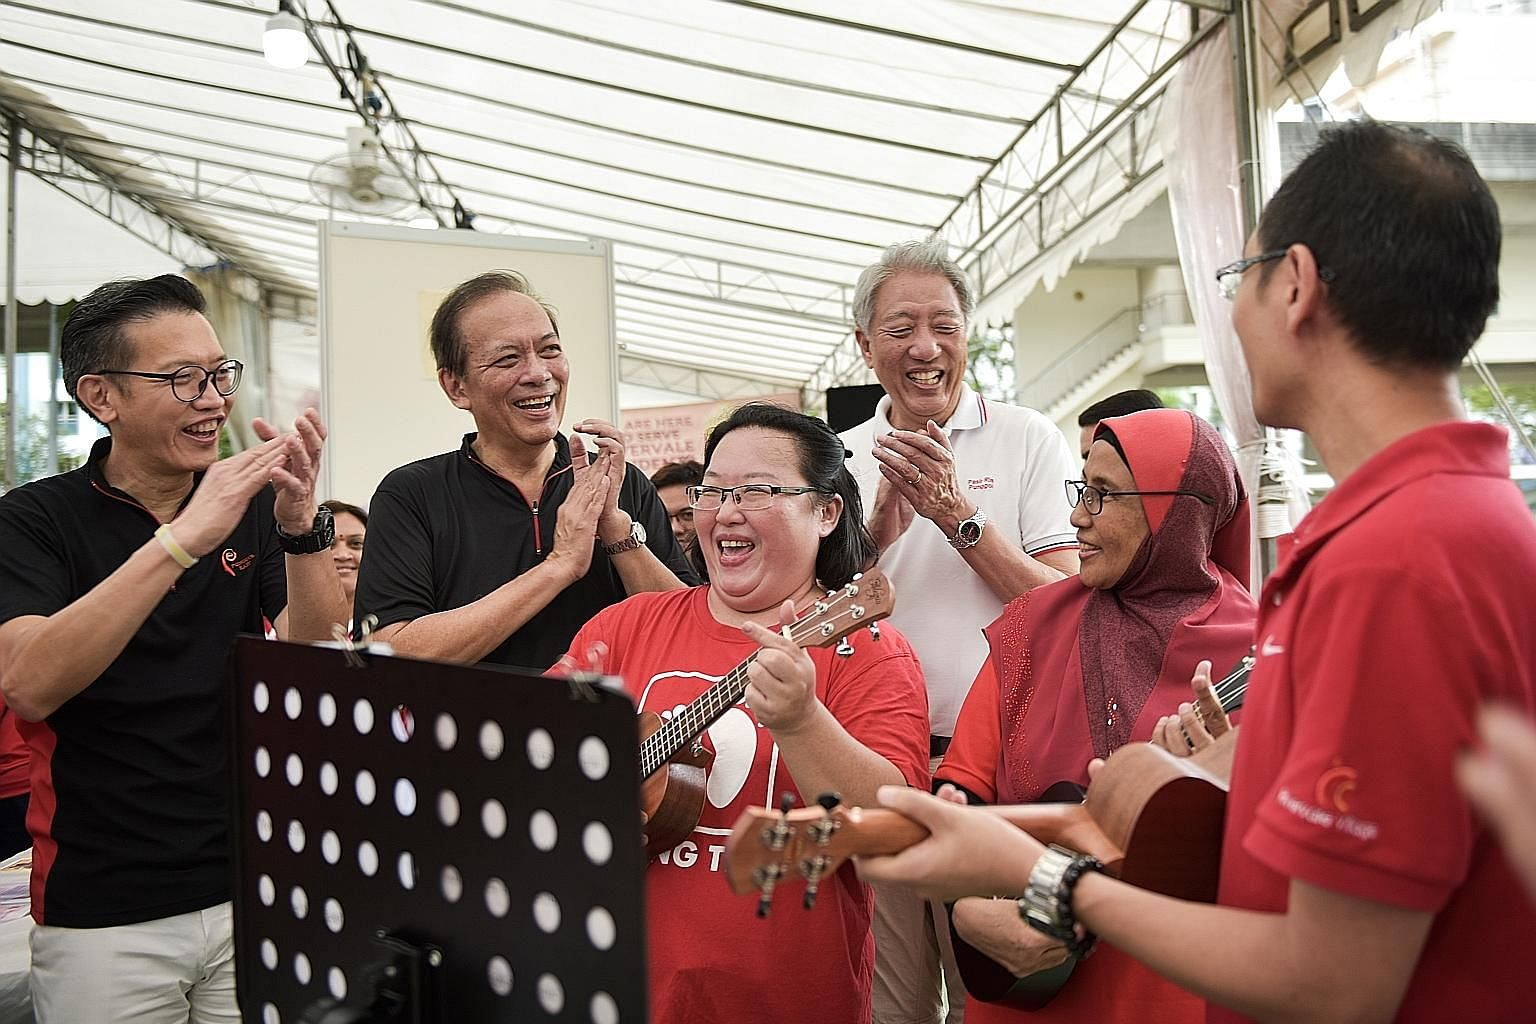 Punggol East MP Charles Chong (second from left) and Deputy Prime Minister Teo Chee Hean (in white) interacting with some of the residents of Punggol at yesterday's groundbreaking ceremony. The new community club will have a childcare centre, two dan